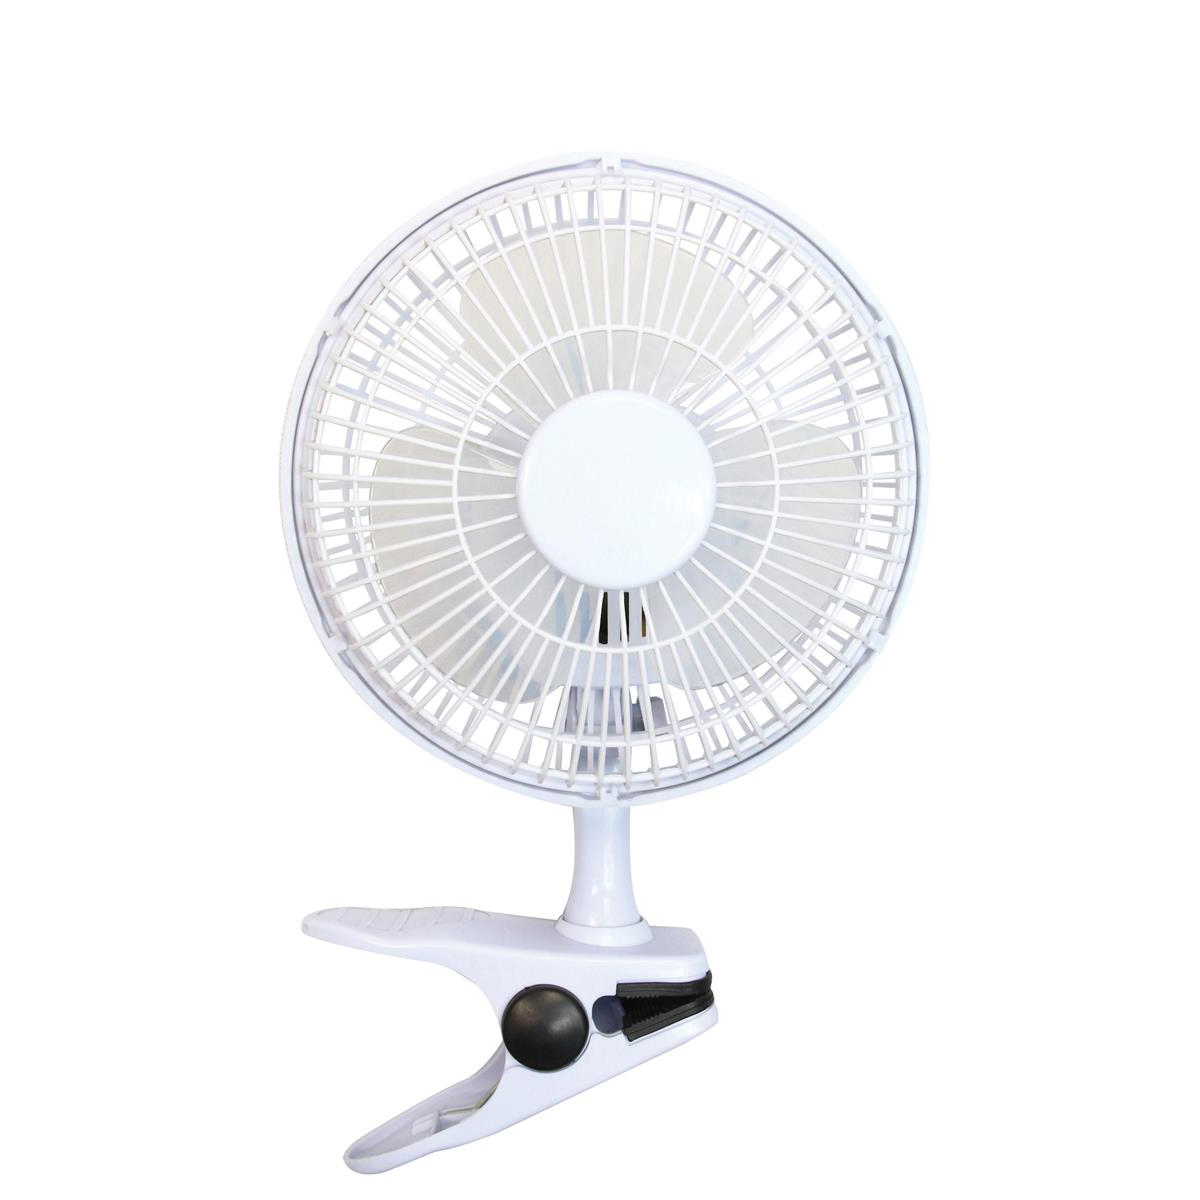 Desk Fans 5 Star Facilities Clip-On Fan 6 Inch with Tilt for Desk or Shelf 2-Speed 1.25-1.3m Cable Dia.152mm White